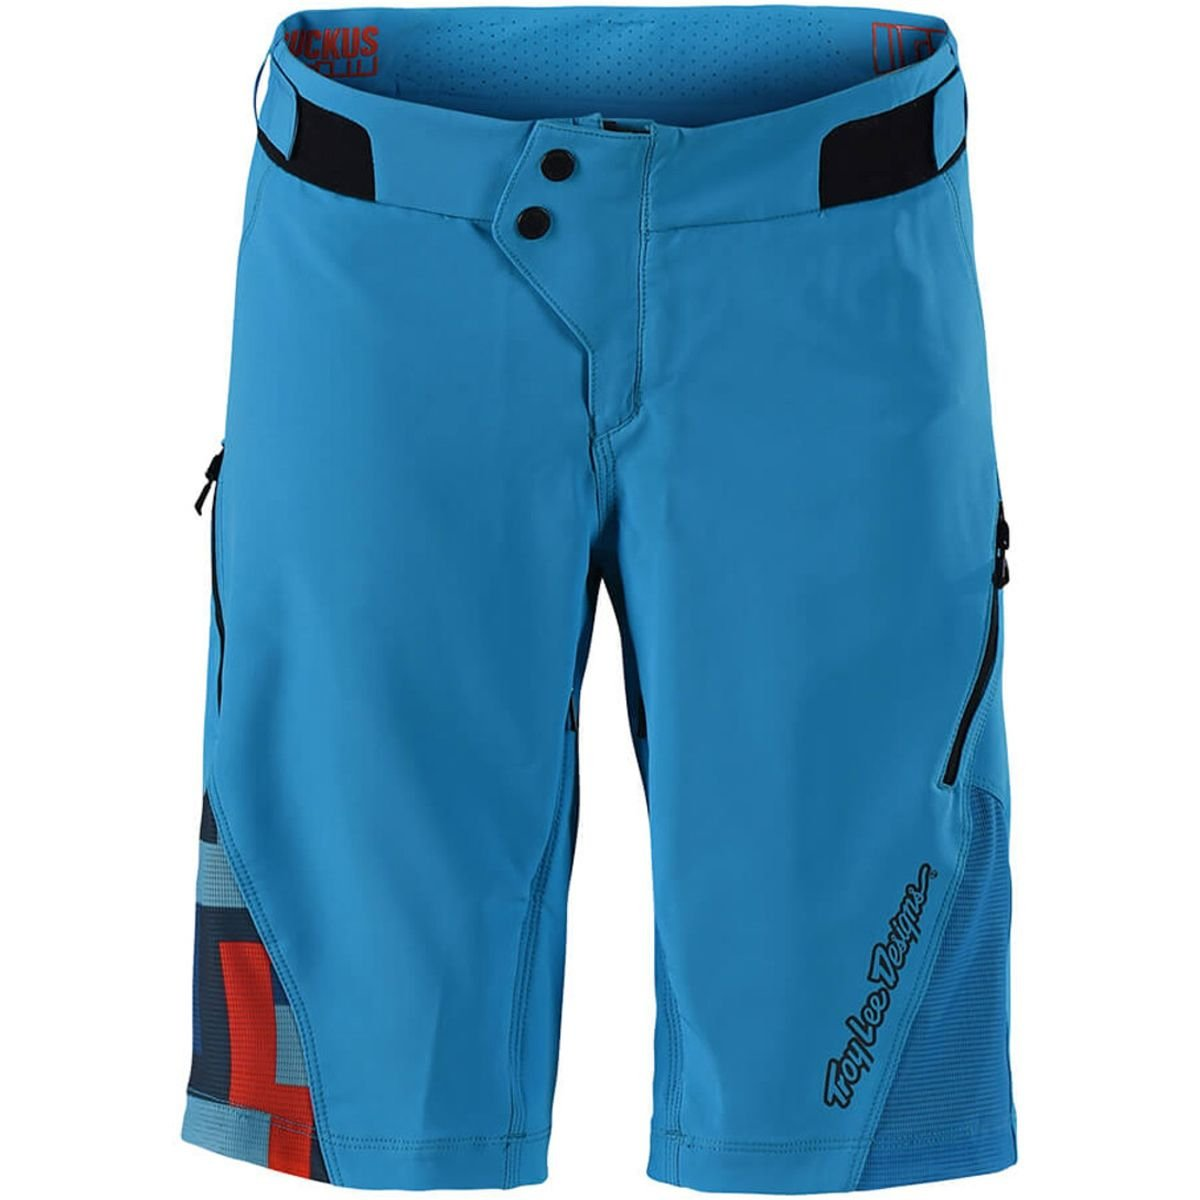 Troy Lee Designs Ruckus Solid Women's Off-Road BMX Cycling Shorts - Ocean/Small